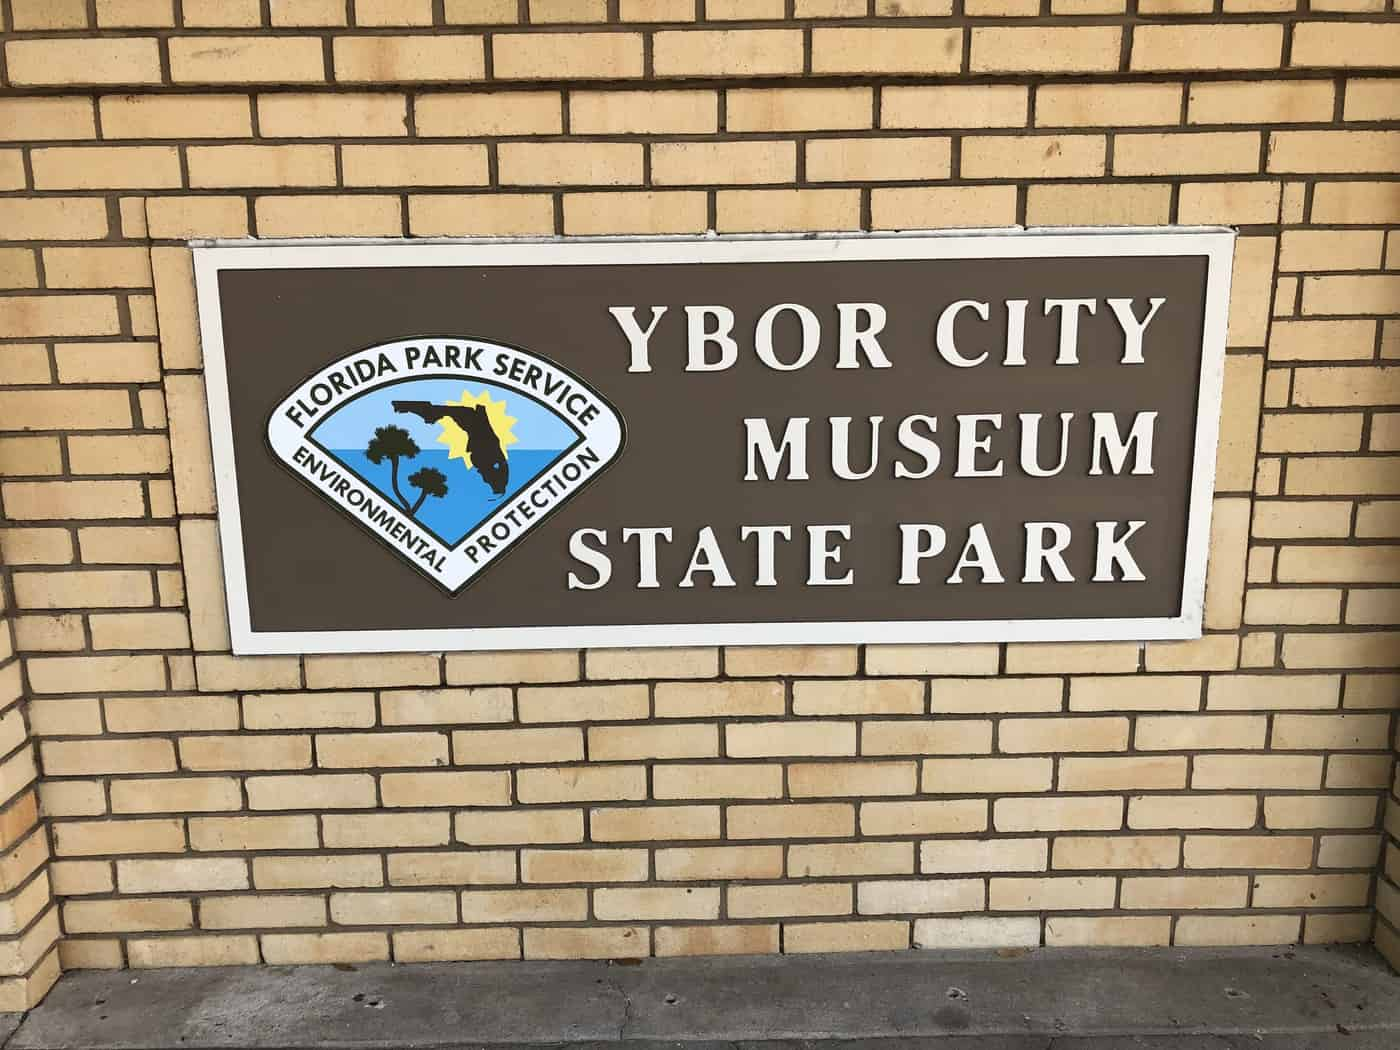 Signage for Ybor City Museum State Park